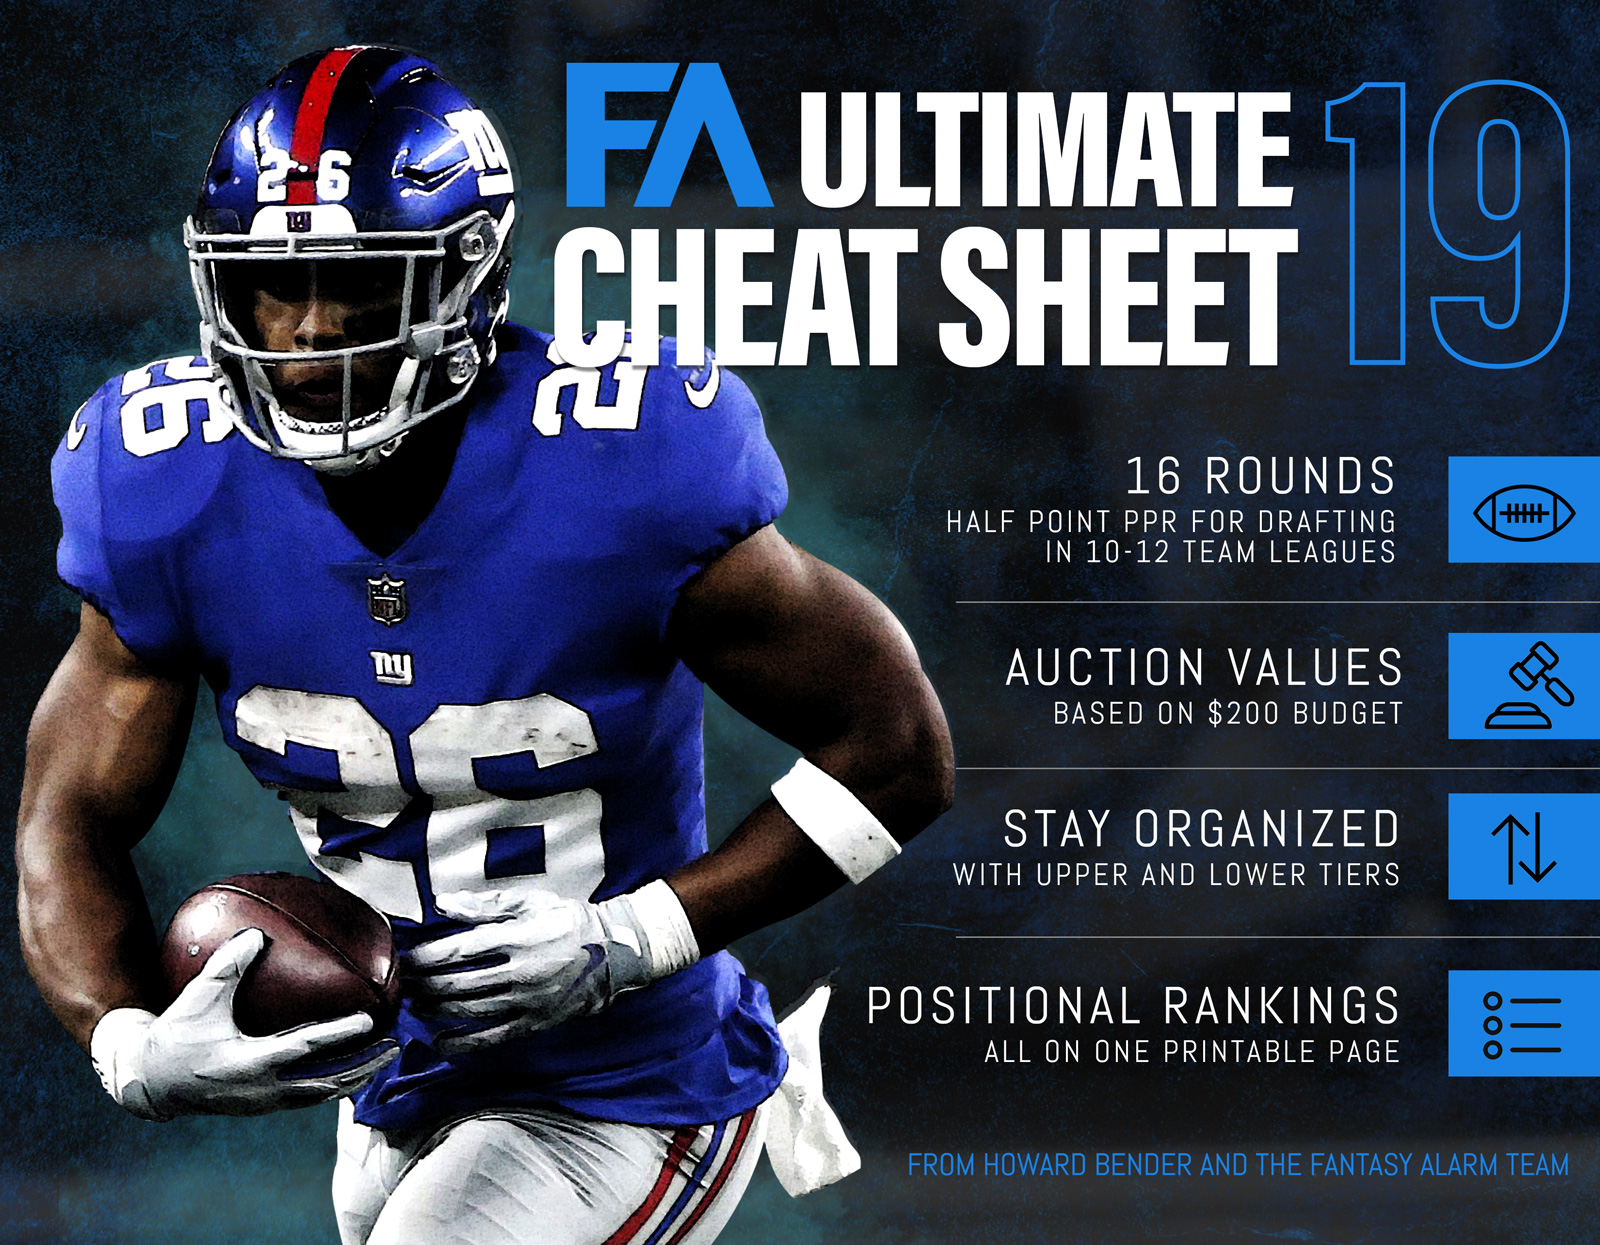 picture about Fantasy Football Cheat Sheet Printable known as 2019 Howard Bender NFL Greatest Cheat Sheet Myth Alarm